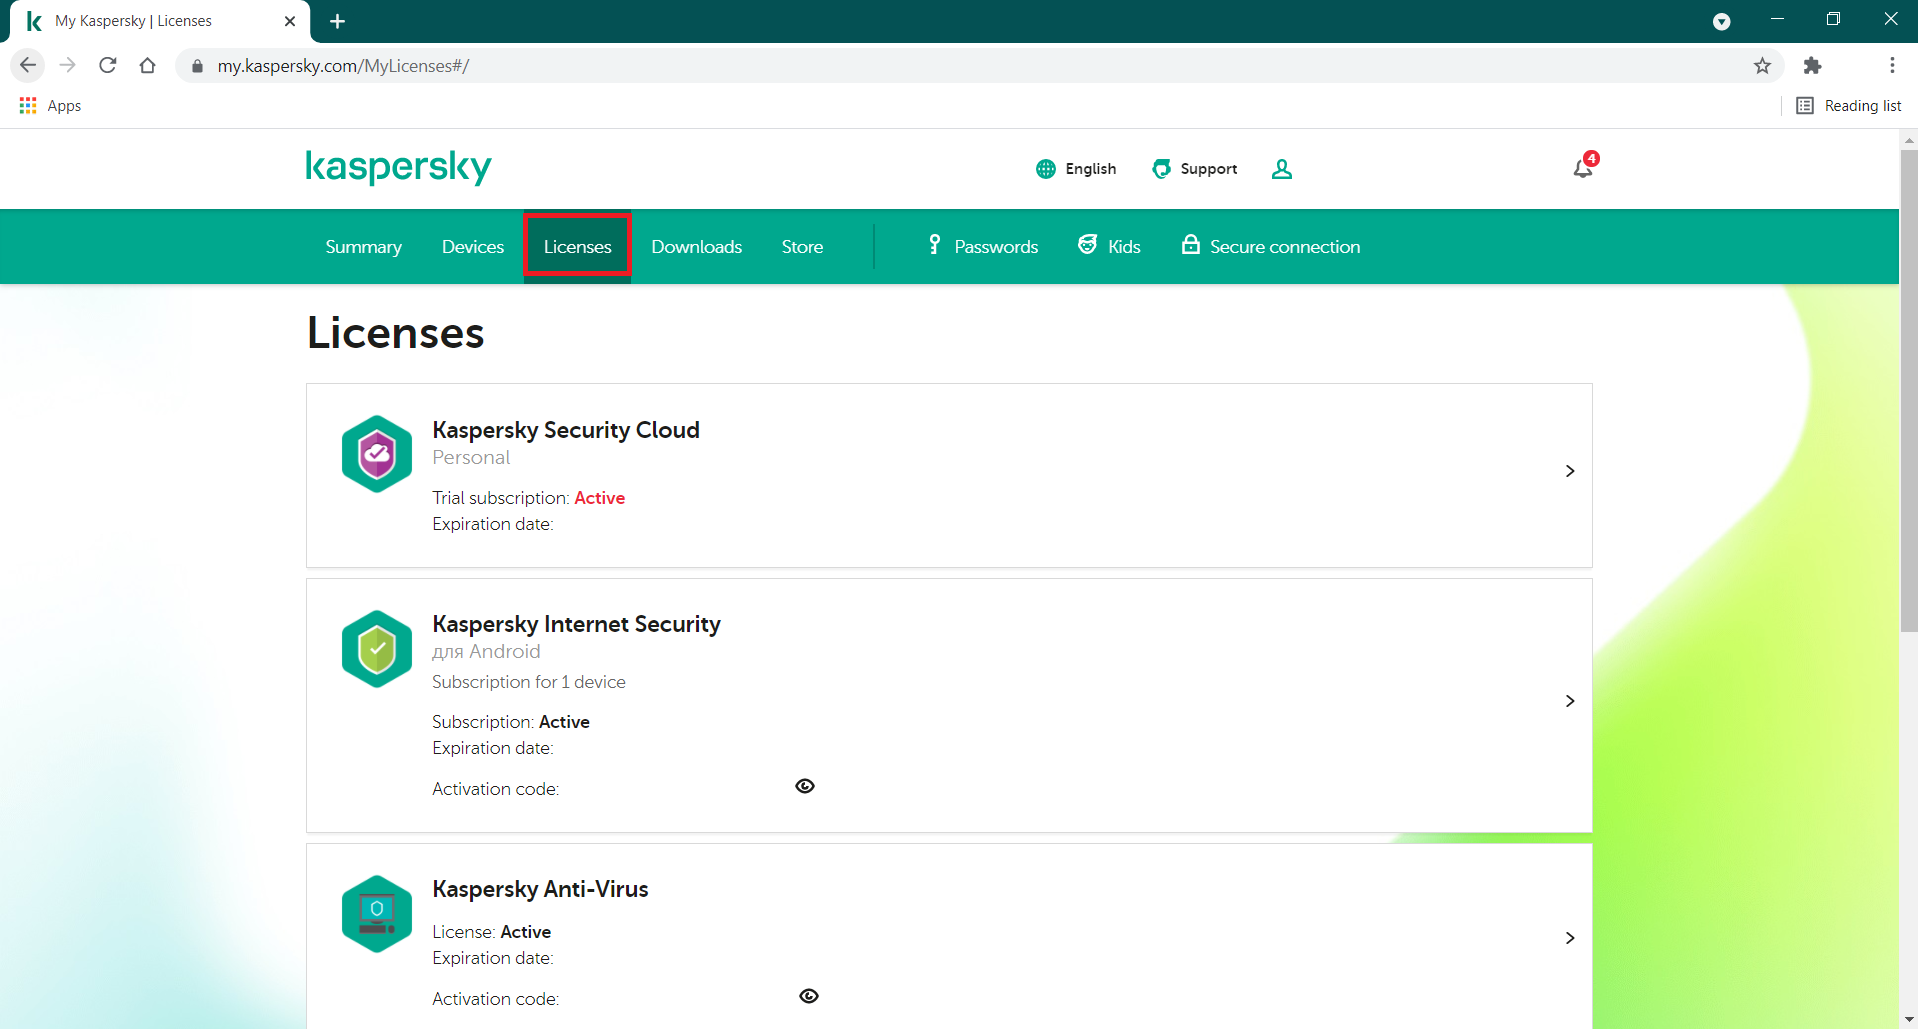 How to use My Kaspersky to send a license to a device that is already connected to your account